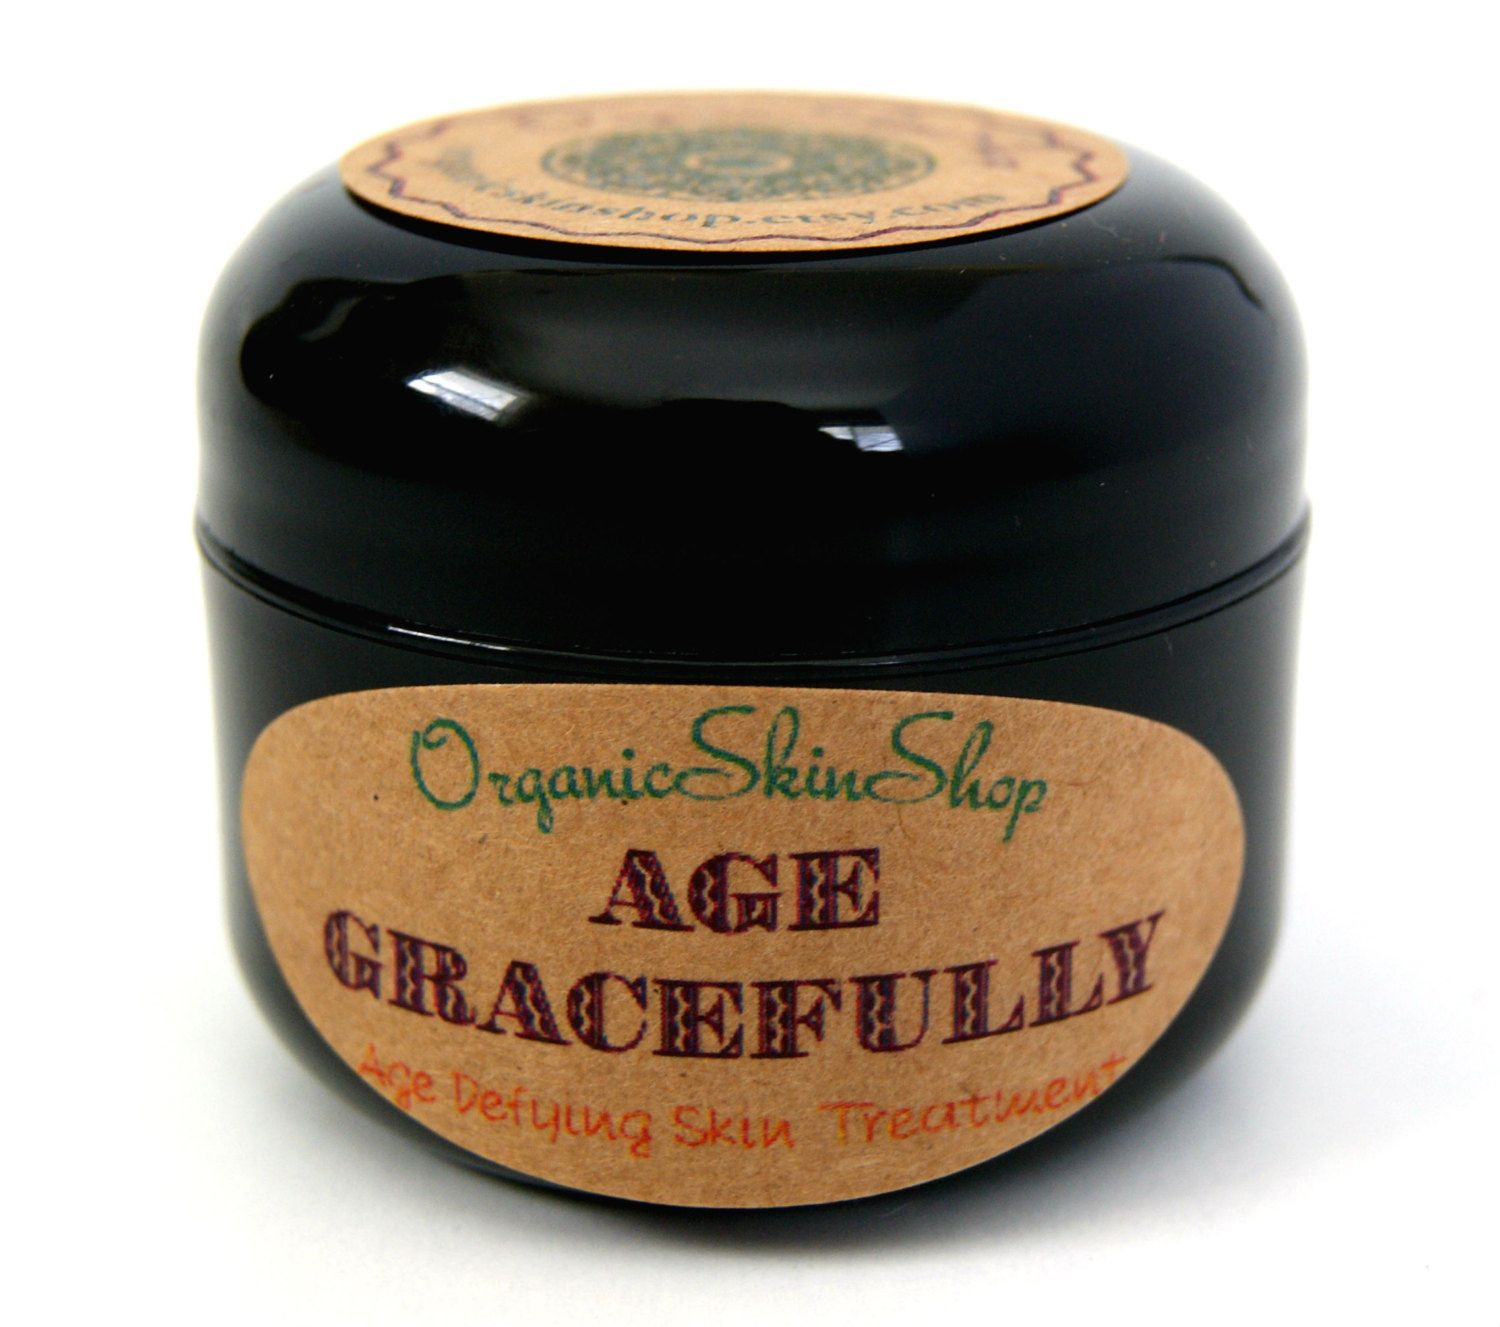 Age Gracefully: Organic Neroli Oil Anti-Aging Facial Moisturizer by OrganicSkinShop on Etsy https://www.etsy.com/listing/185654036/age-gracefully-organic-neroli-oil-anti